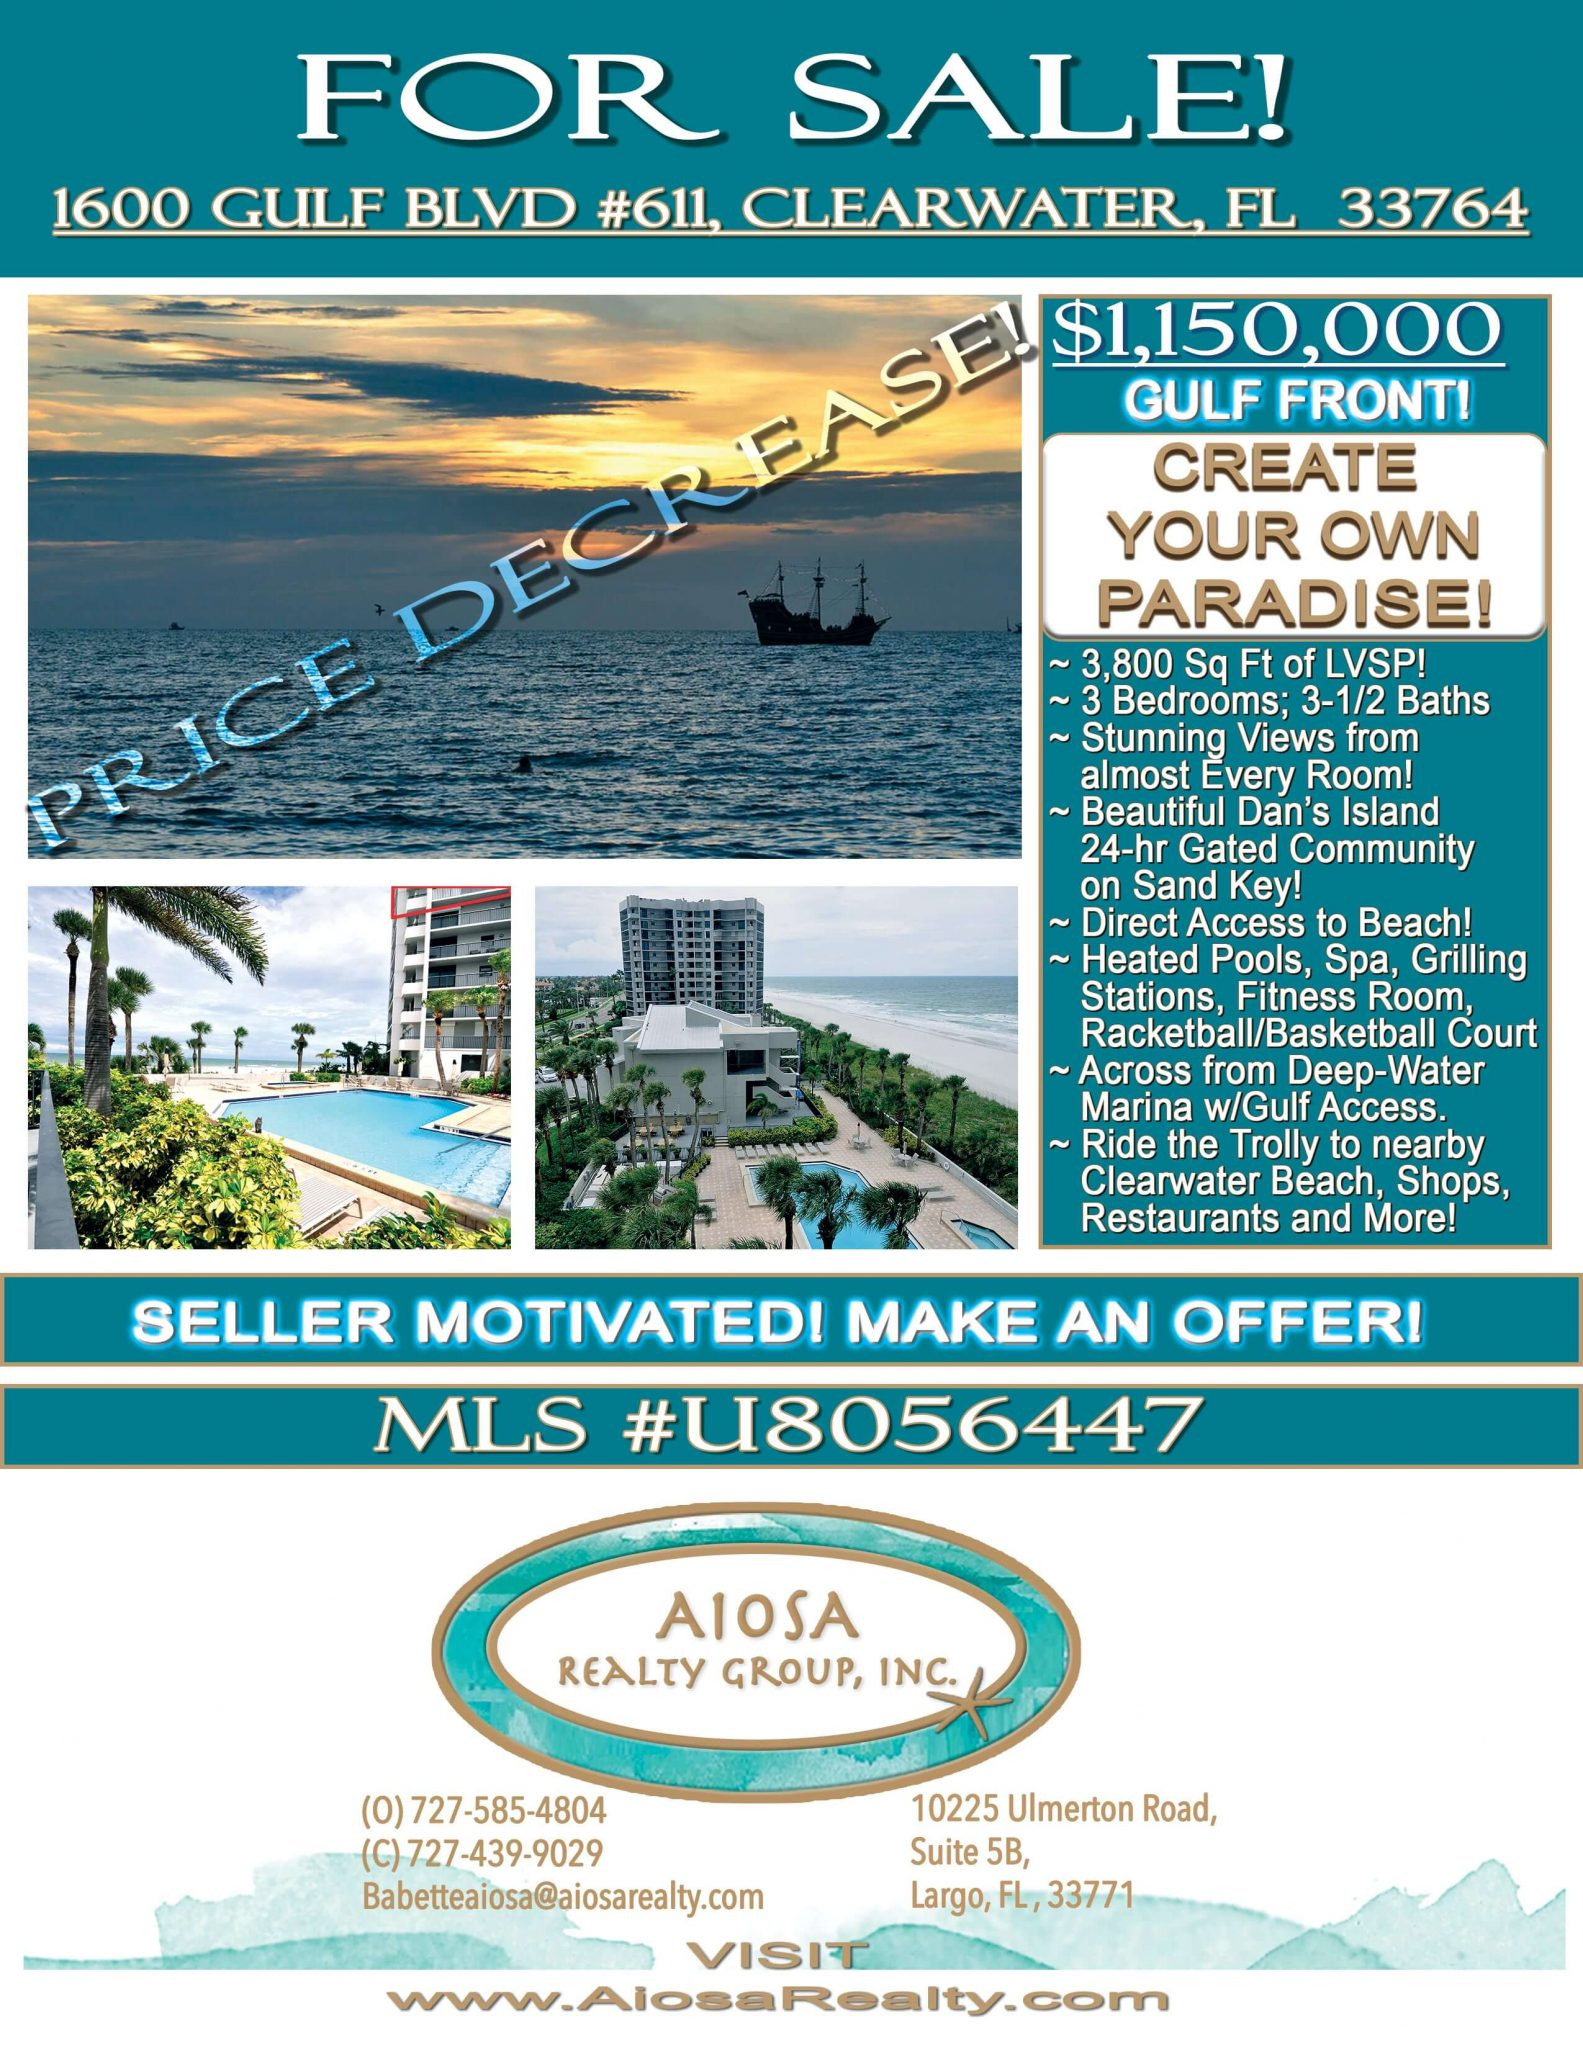 1600 Gulf Blvd Price Decrease image for Aiosa Realty Group